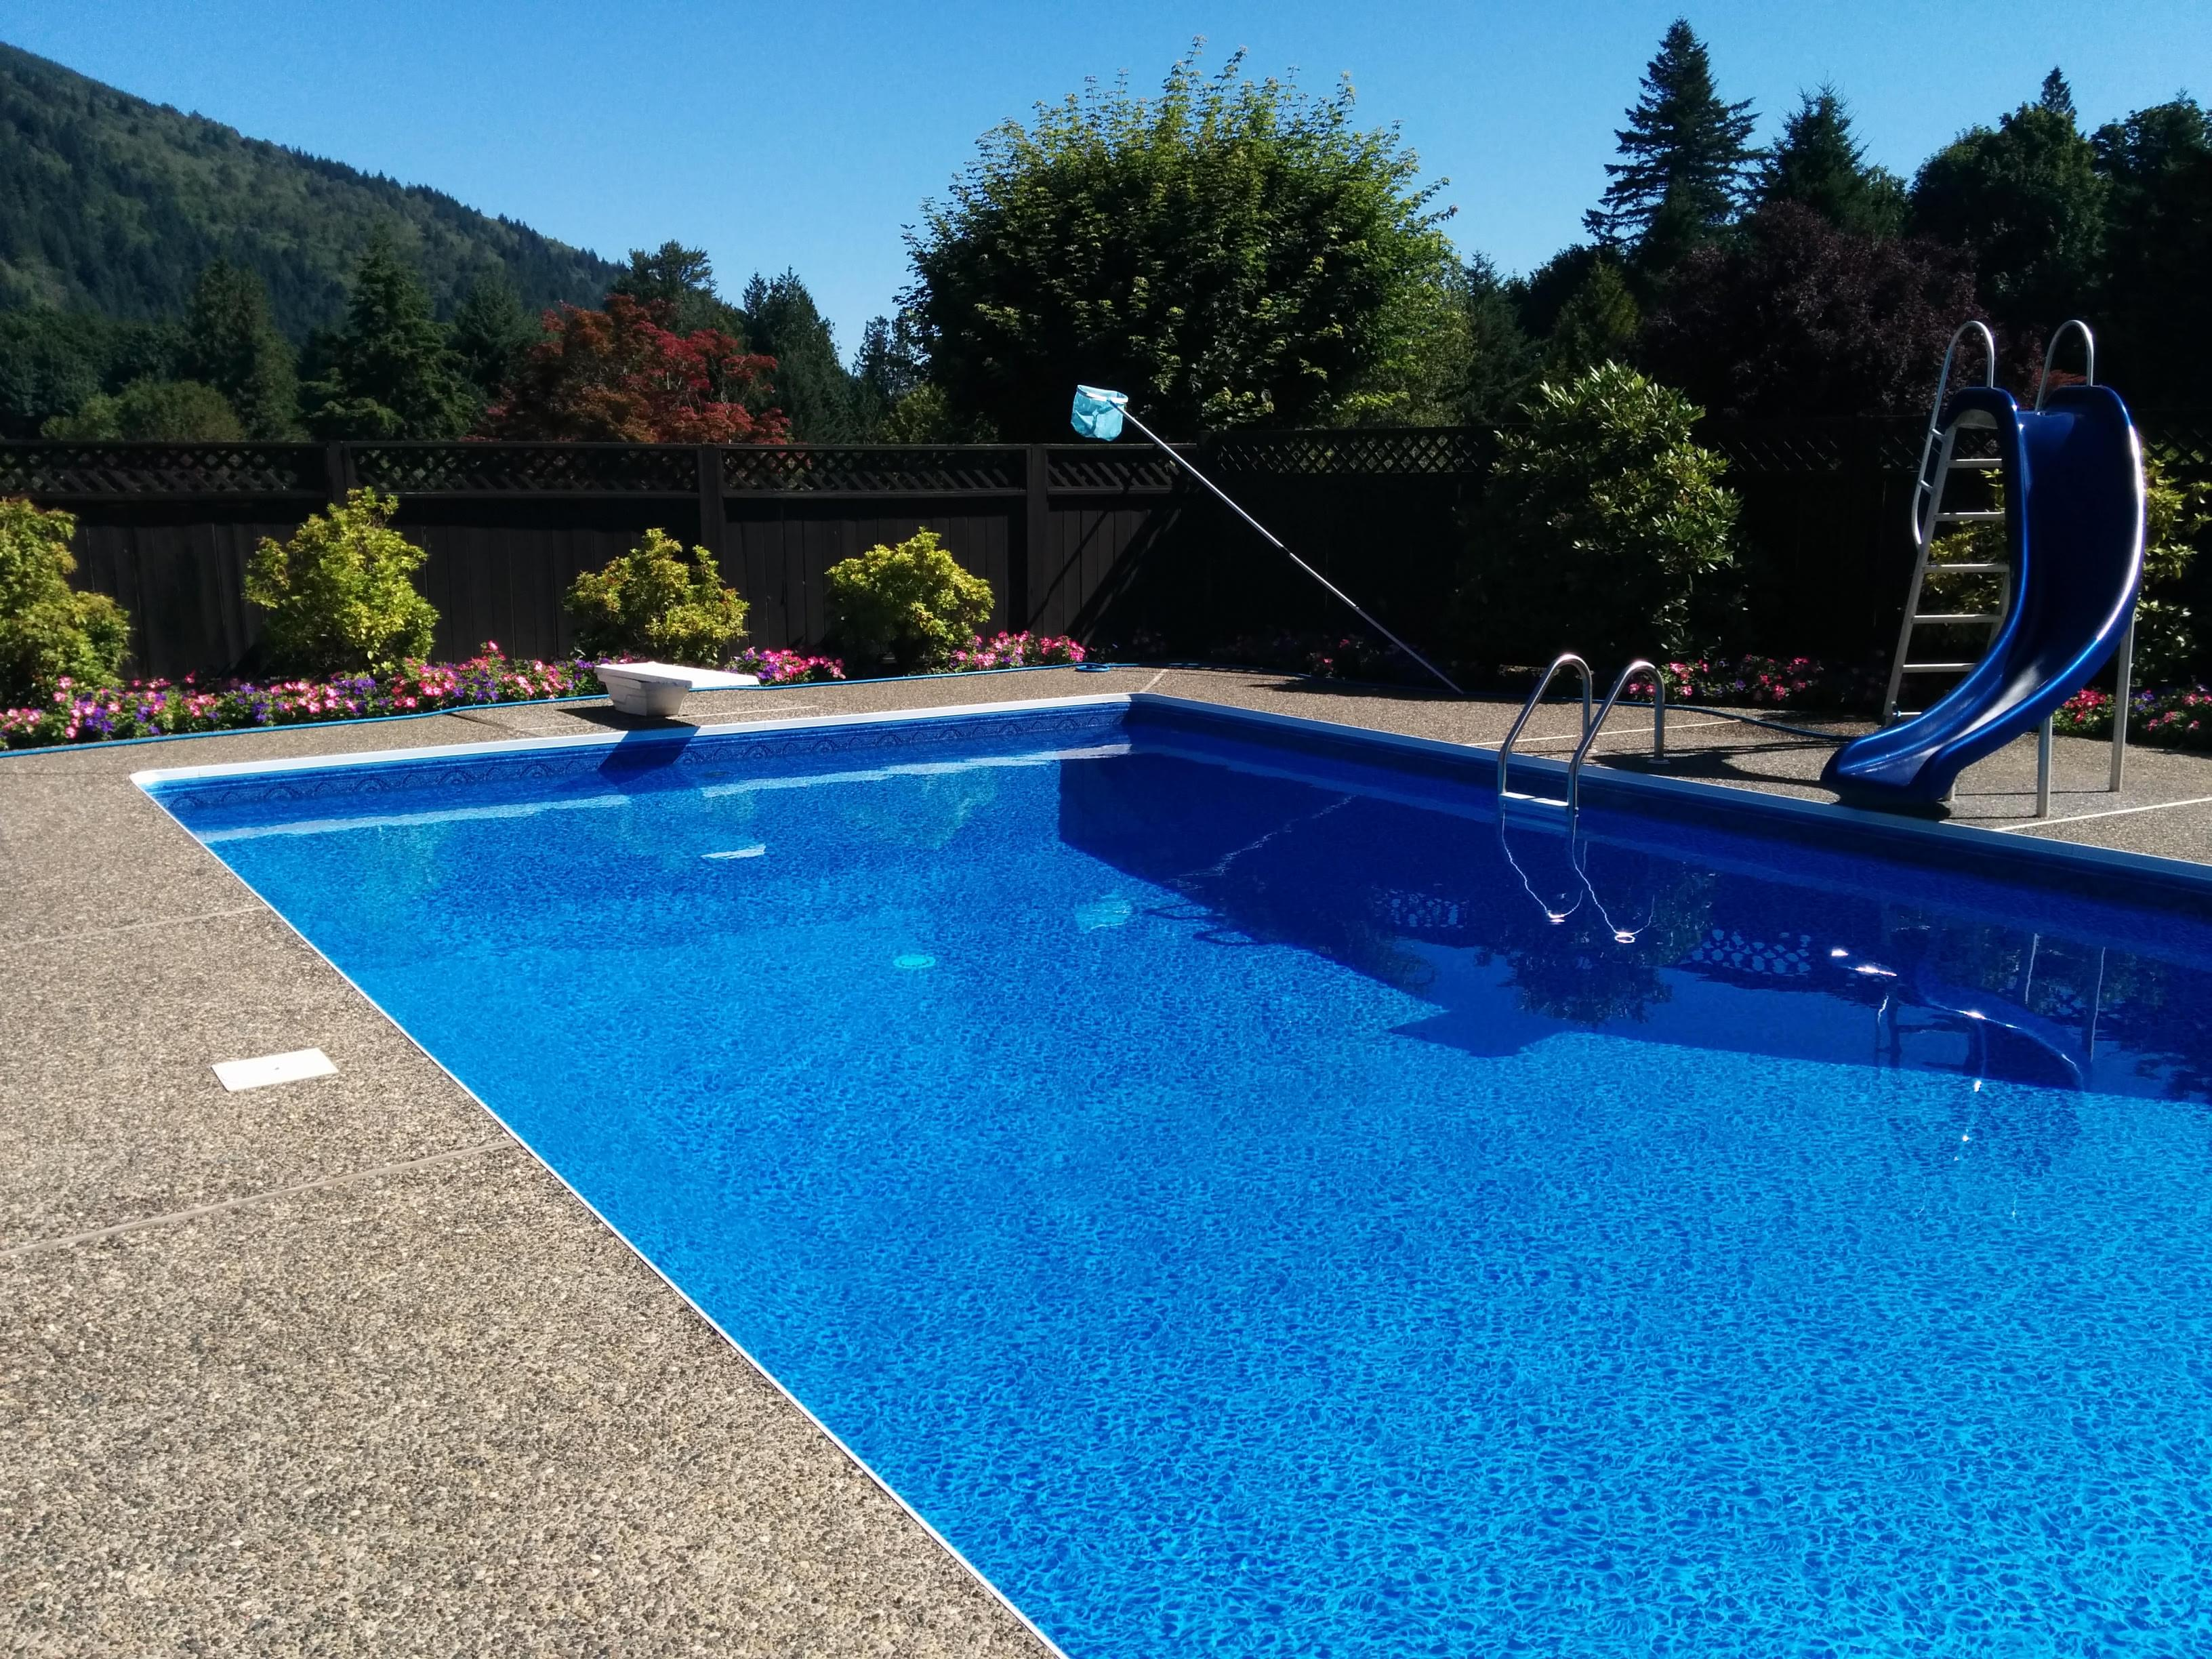 Inground Pools inground pools - pool supplies canada